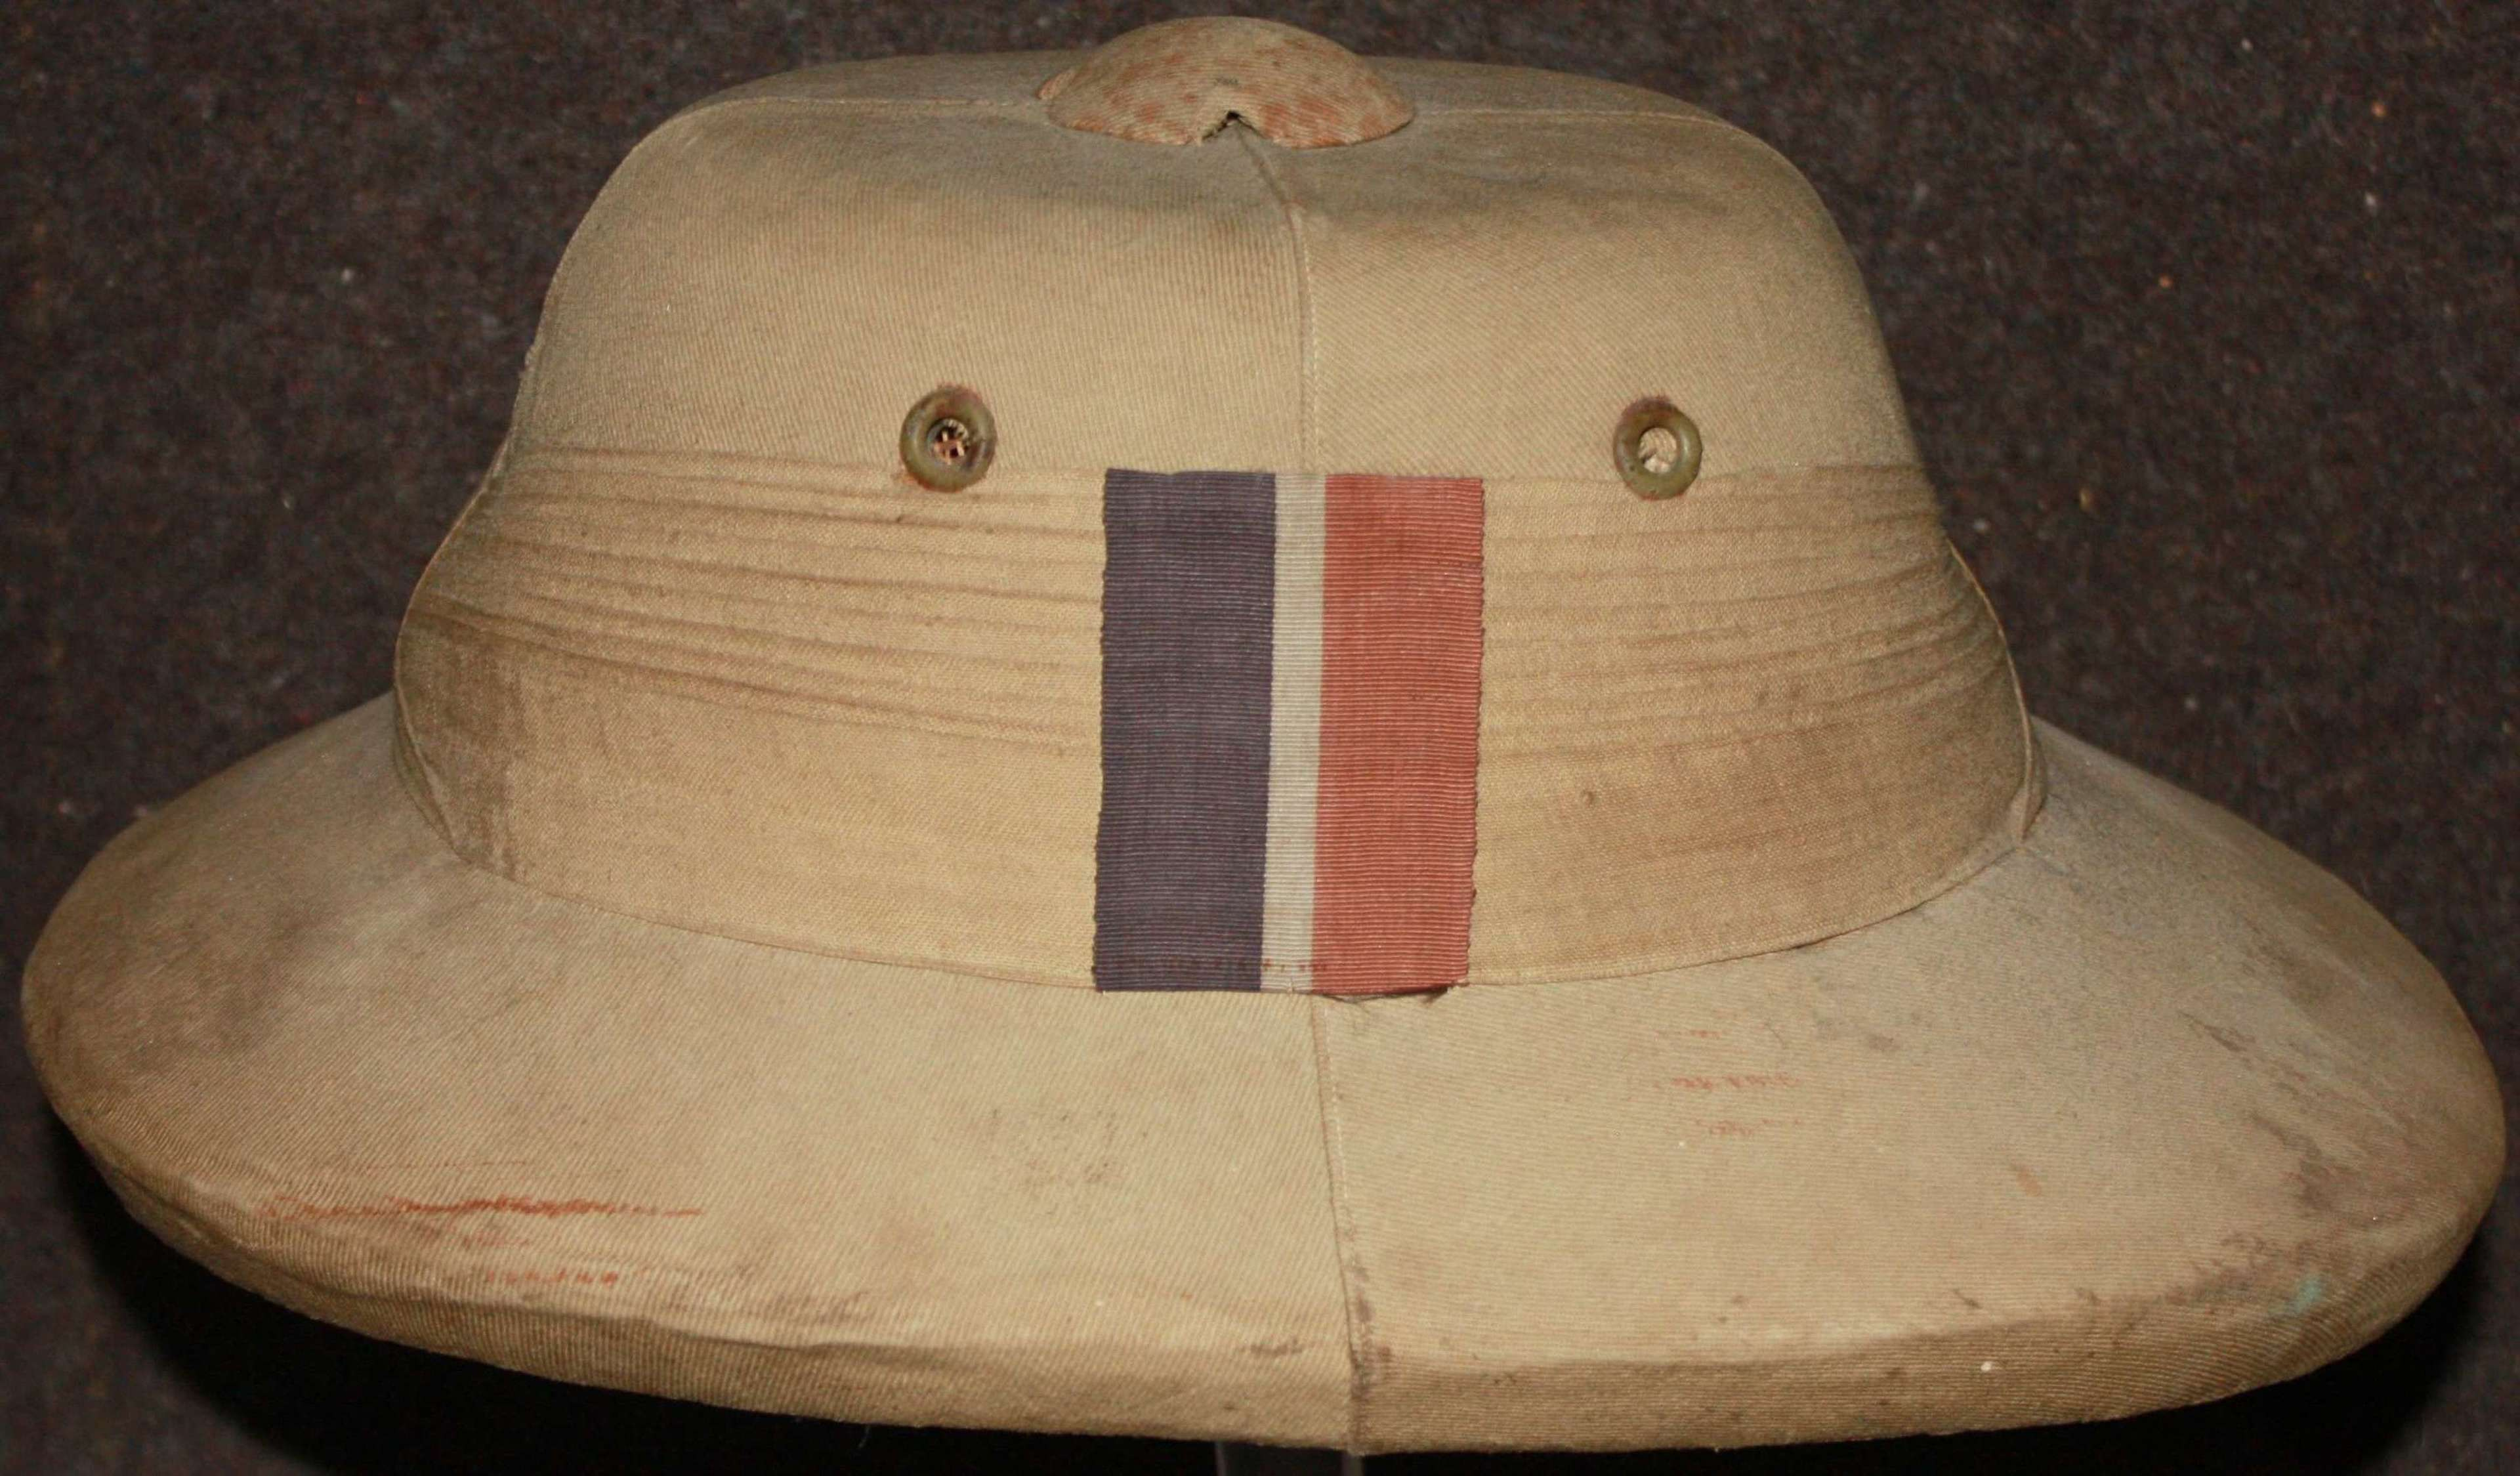 A WWII PERIOD RAF CAWNPORE STYLE SOLAR HELMET T